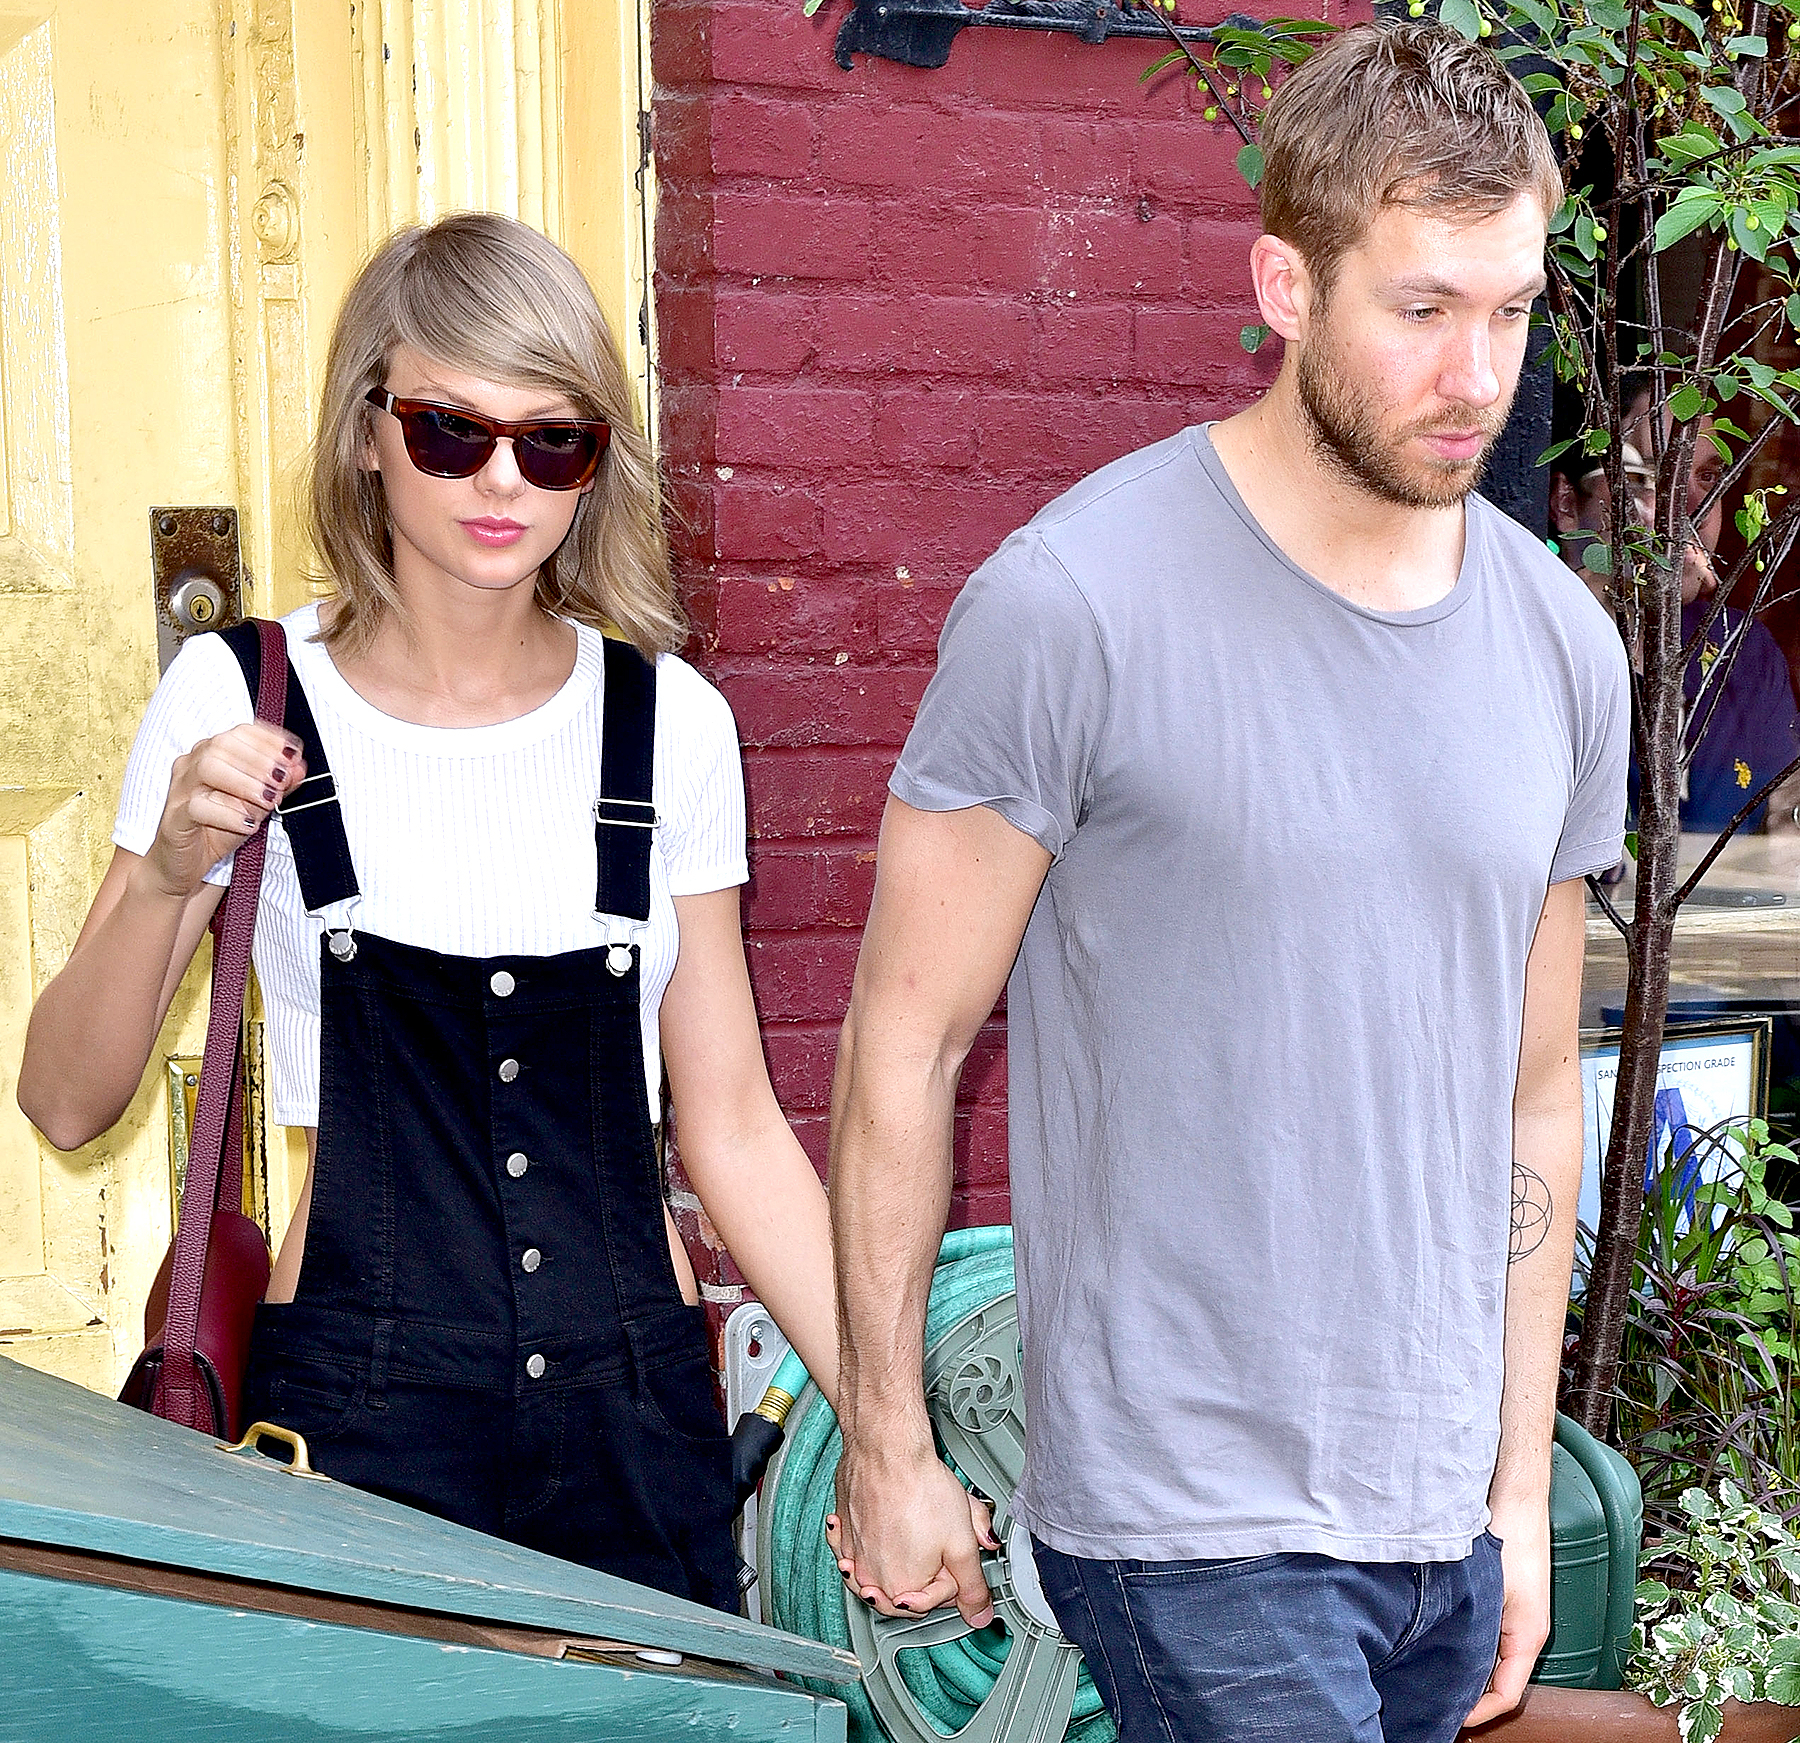 Taylor Swift and Calvin Harris leave the Spotted Pig restaurant on May 28, 2015, in New York City.